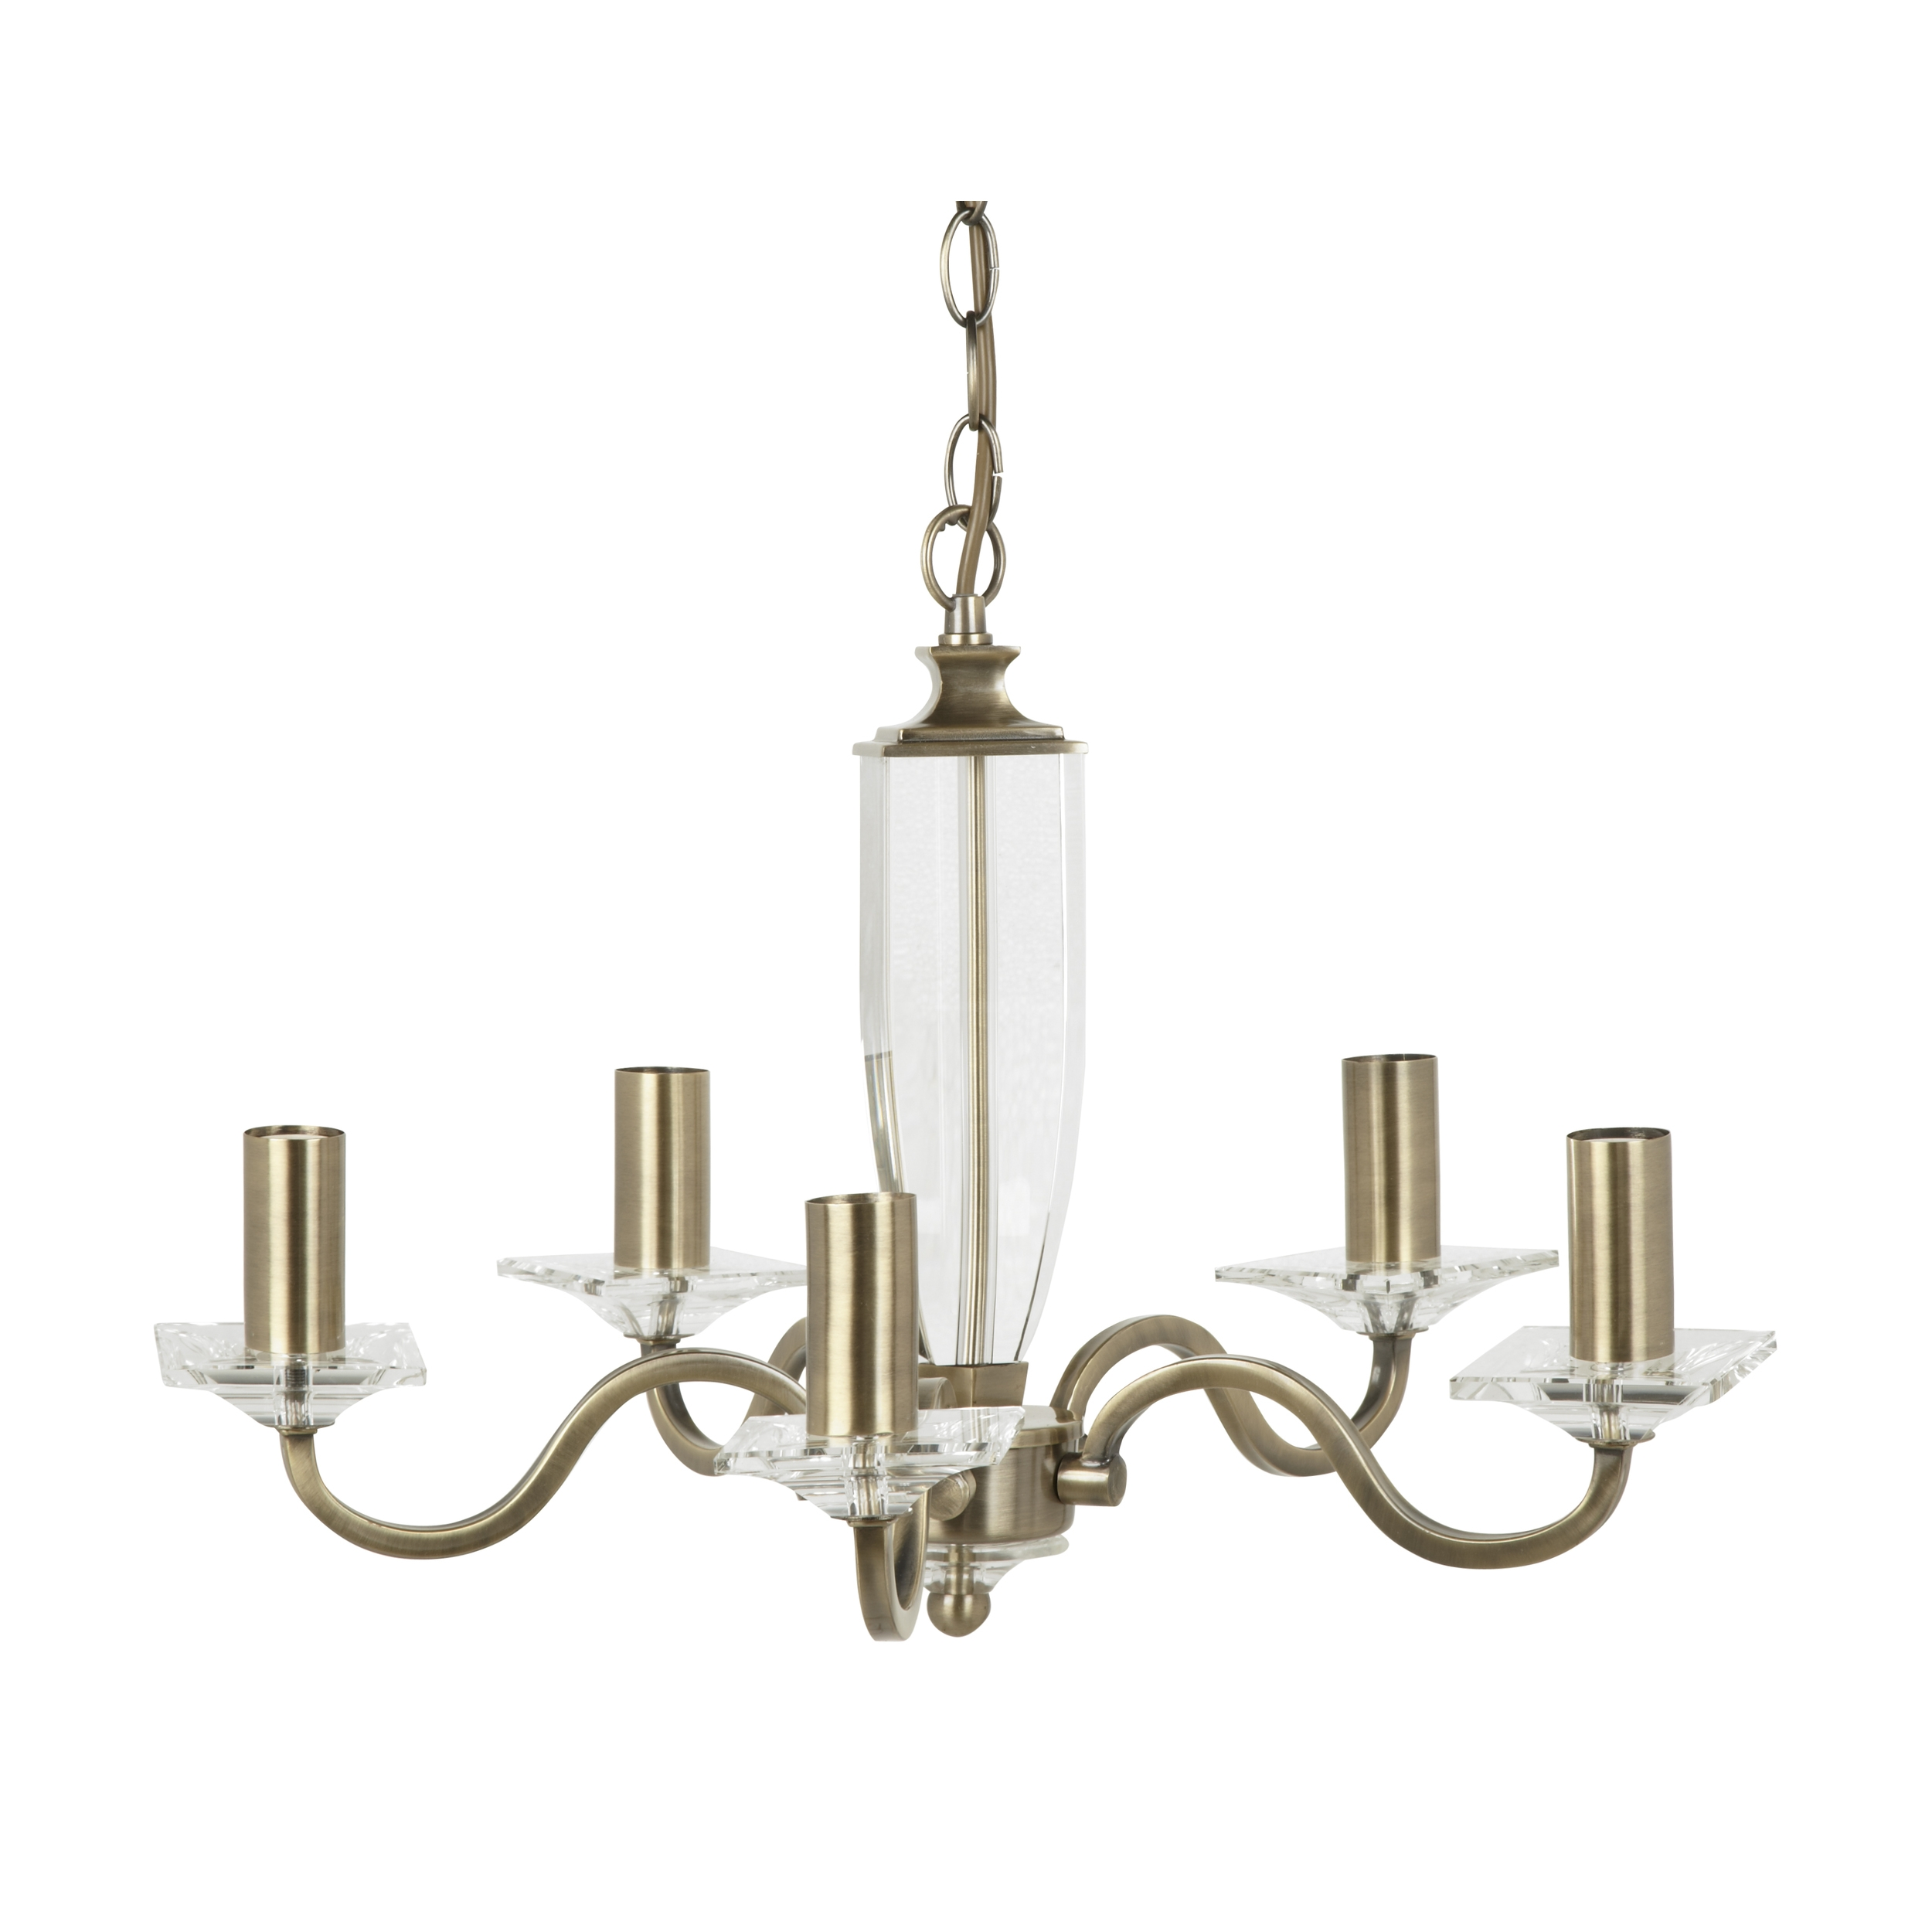 Home – Laura Ashley Chandeliers